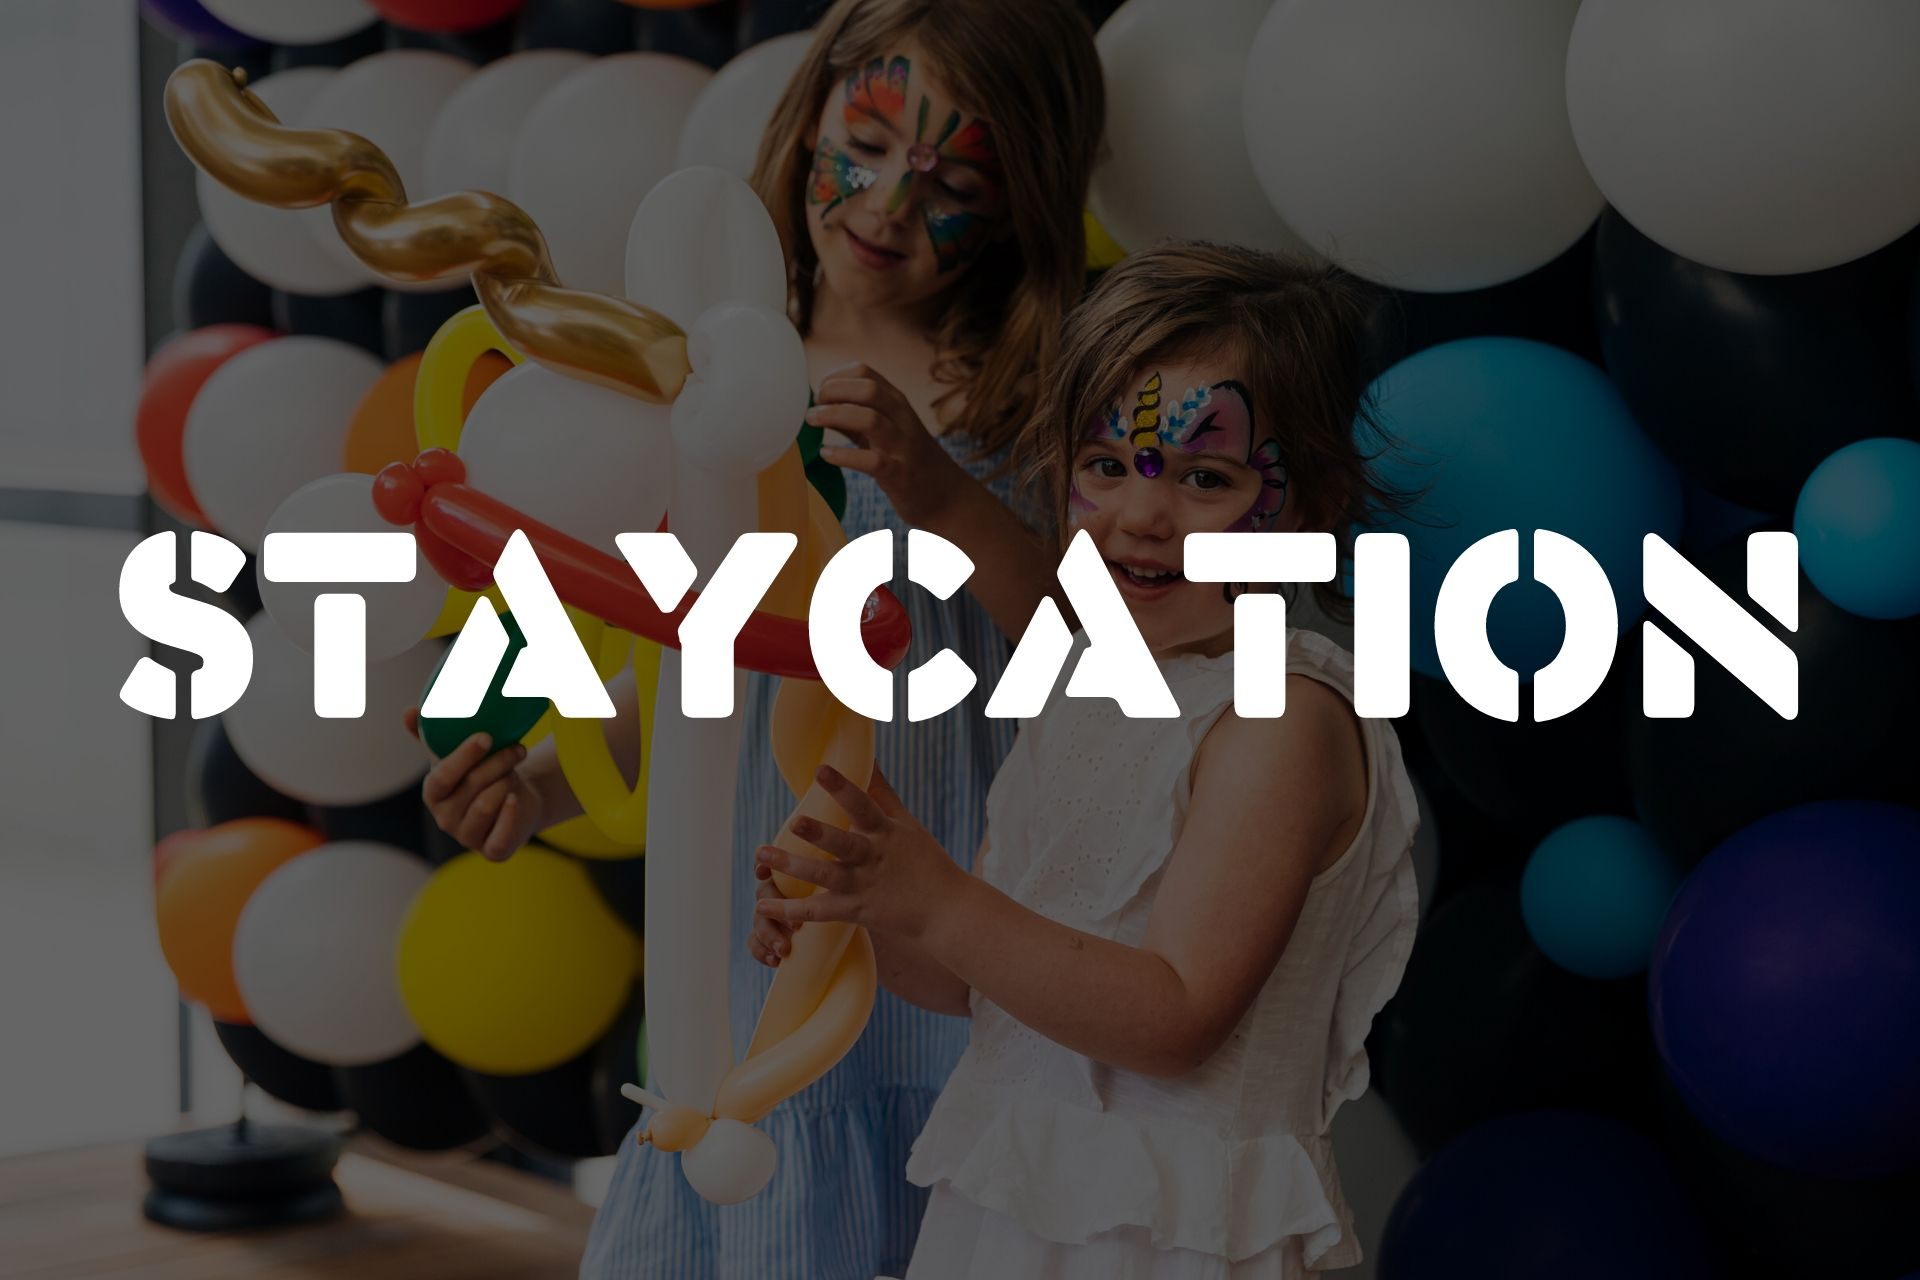 Staycation for kids during school holidays